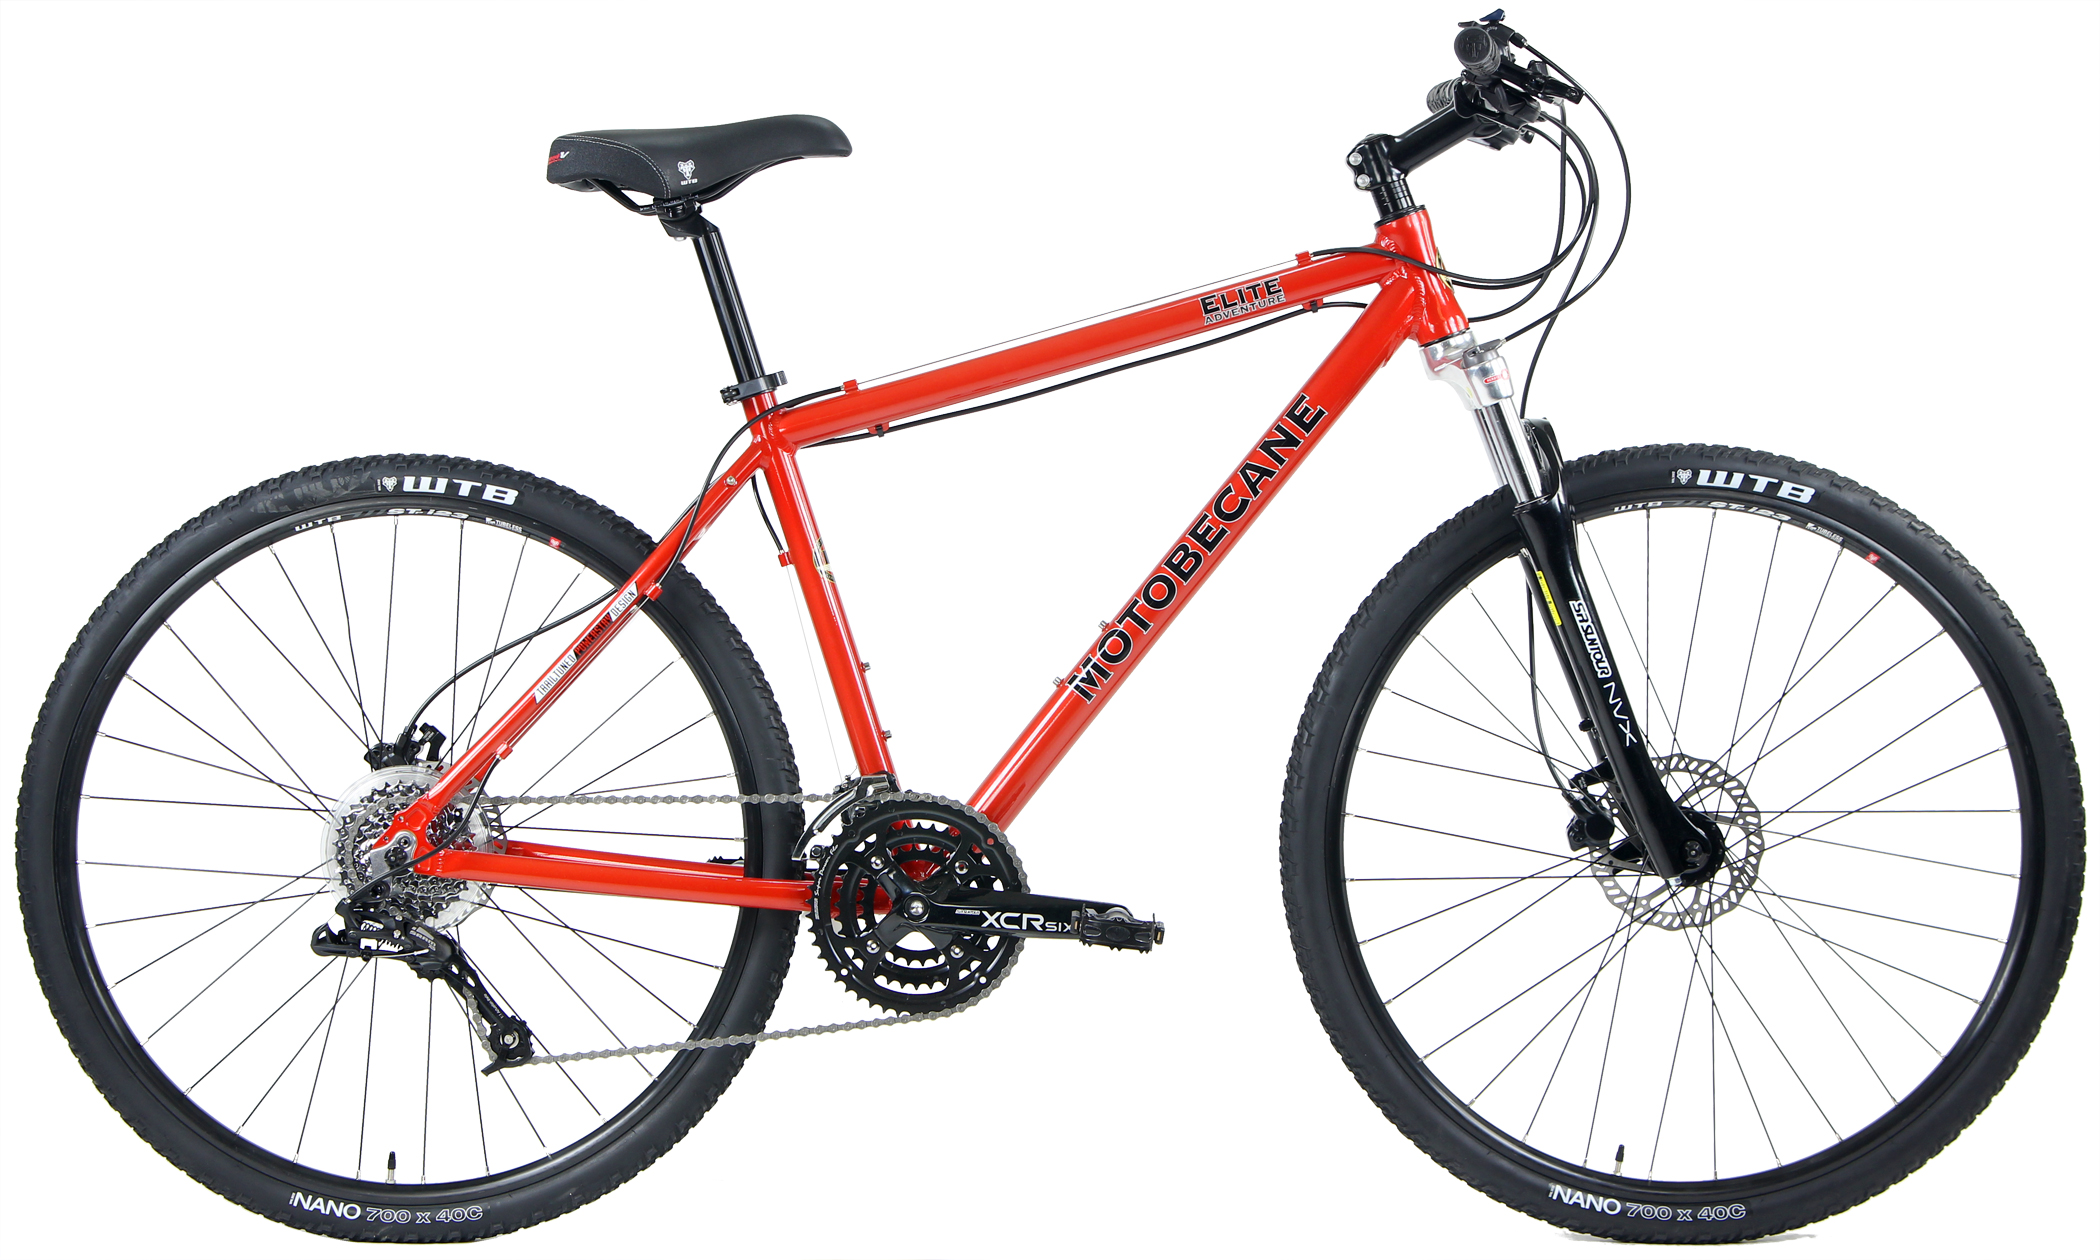 Bikes 2018 Motobecane Elite Adventure X5LTD Sram Equipped Adventure Hybrid Image